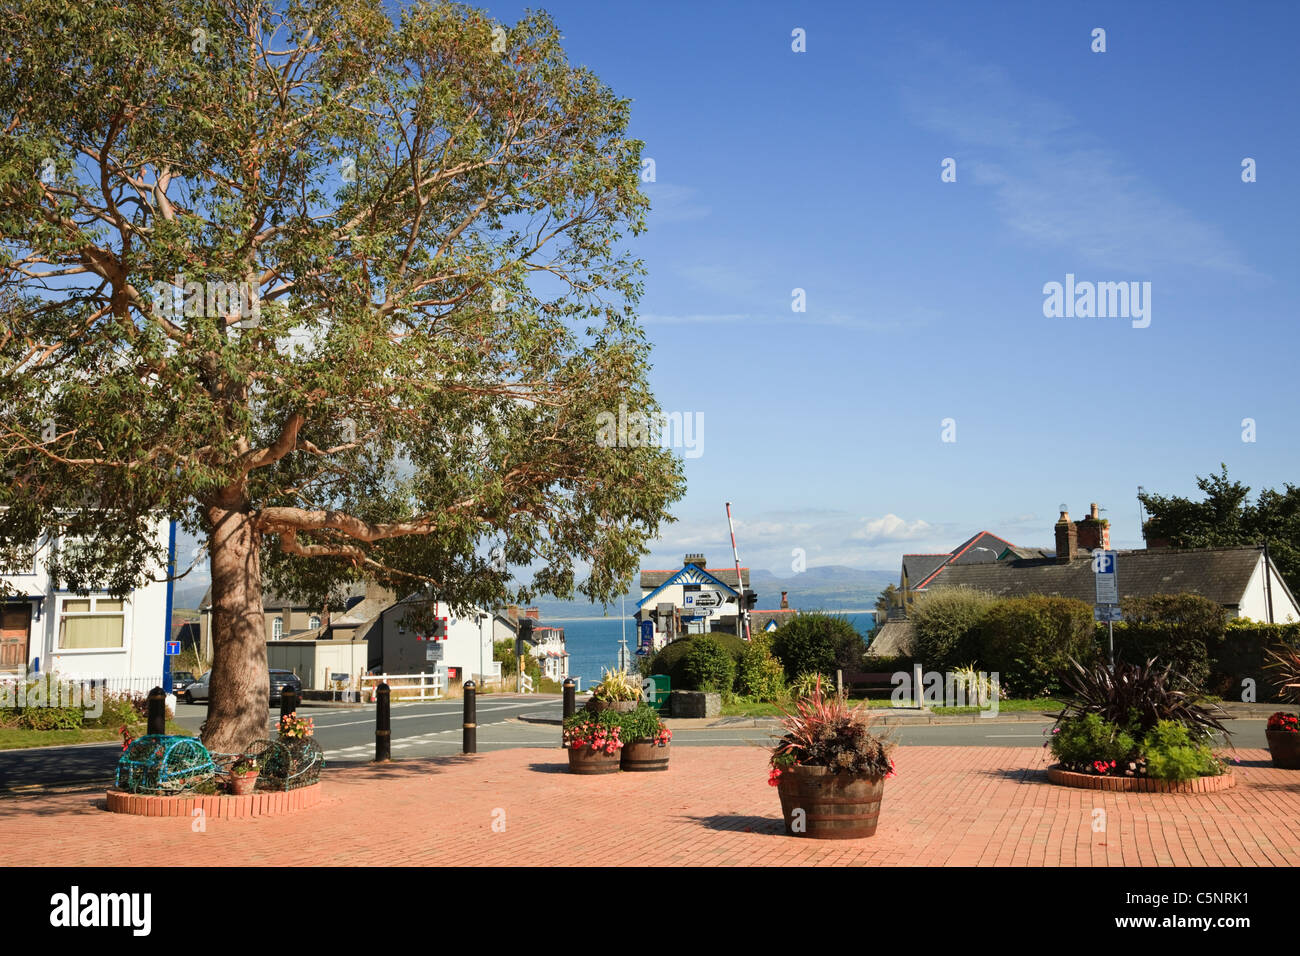 Block paved square with flower tubs in Welsh seaside town. Y Maes, Criccieth, Llyn Peninsula, Gwynedd, North Wales, - Stock Image